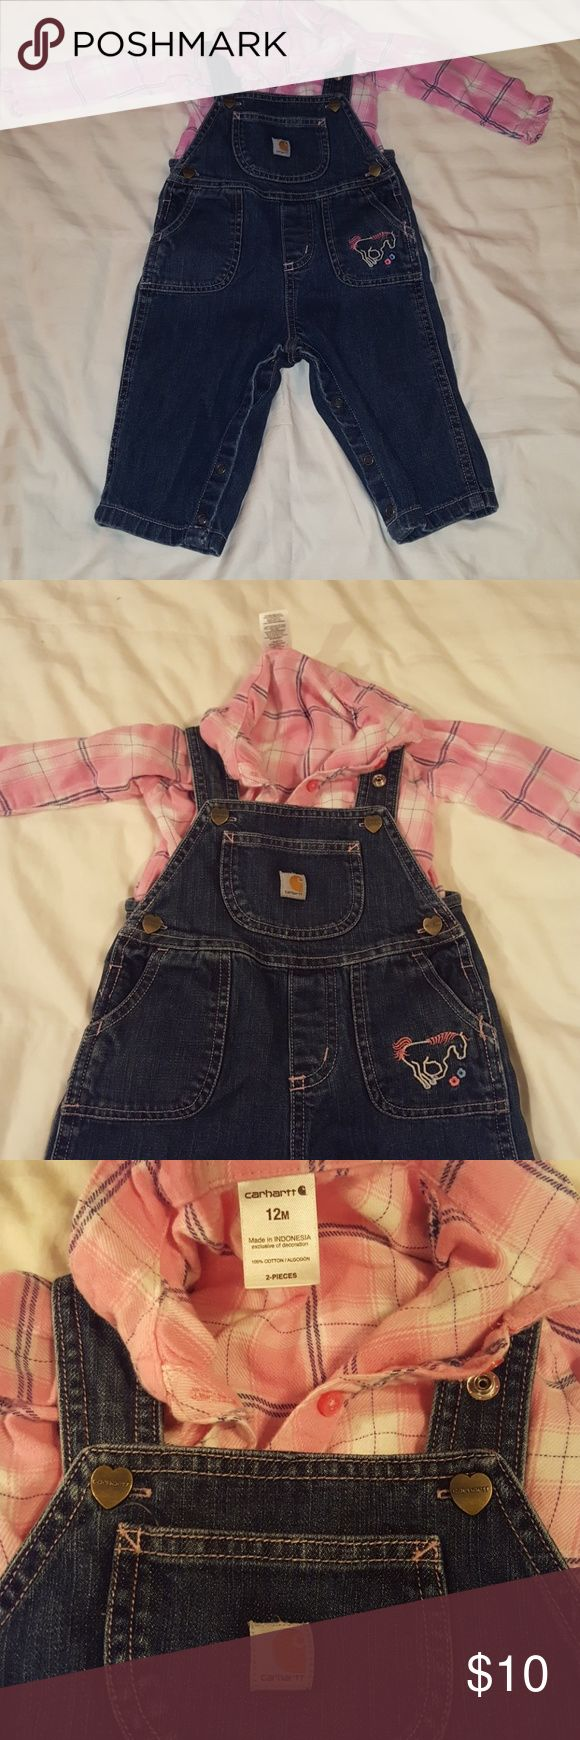 Carhartt overalls and matching plaid onsie Like new, no stains. Comes from clean smoke and pet free home. Carhartt Matching Sets